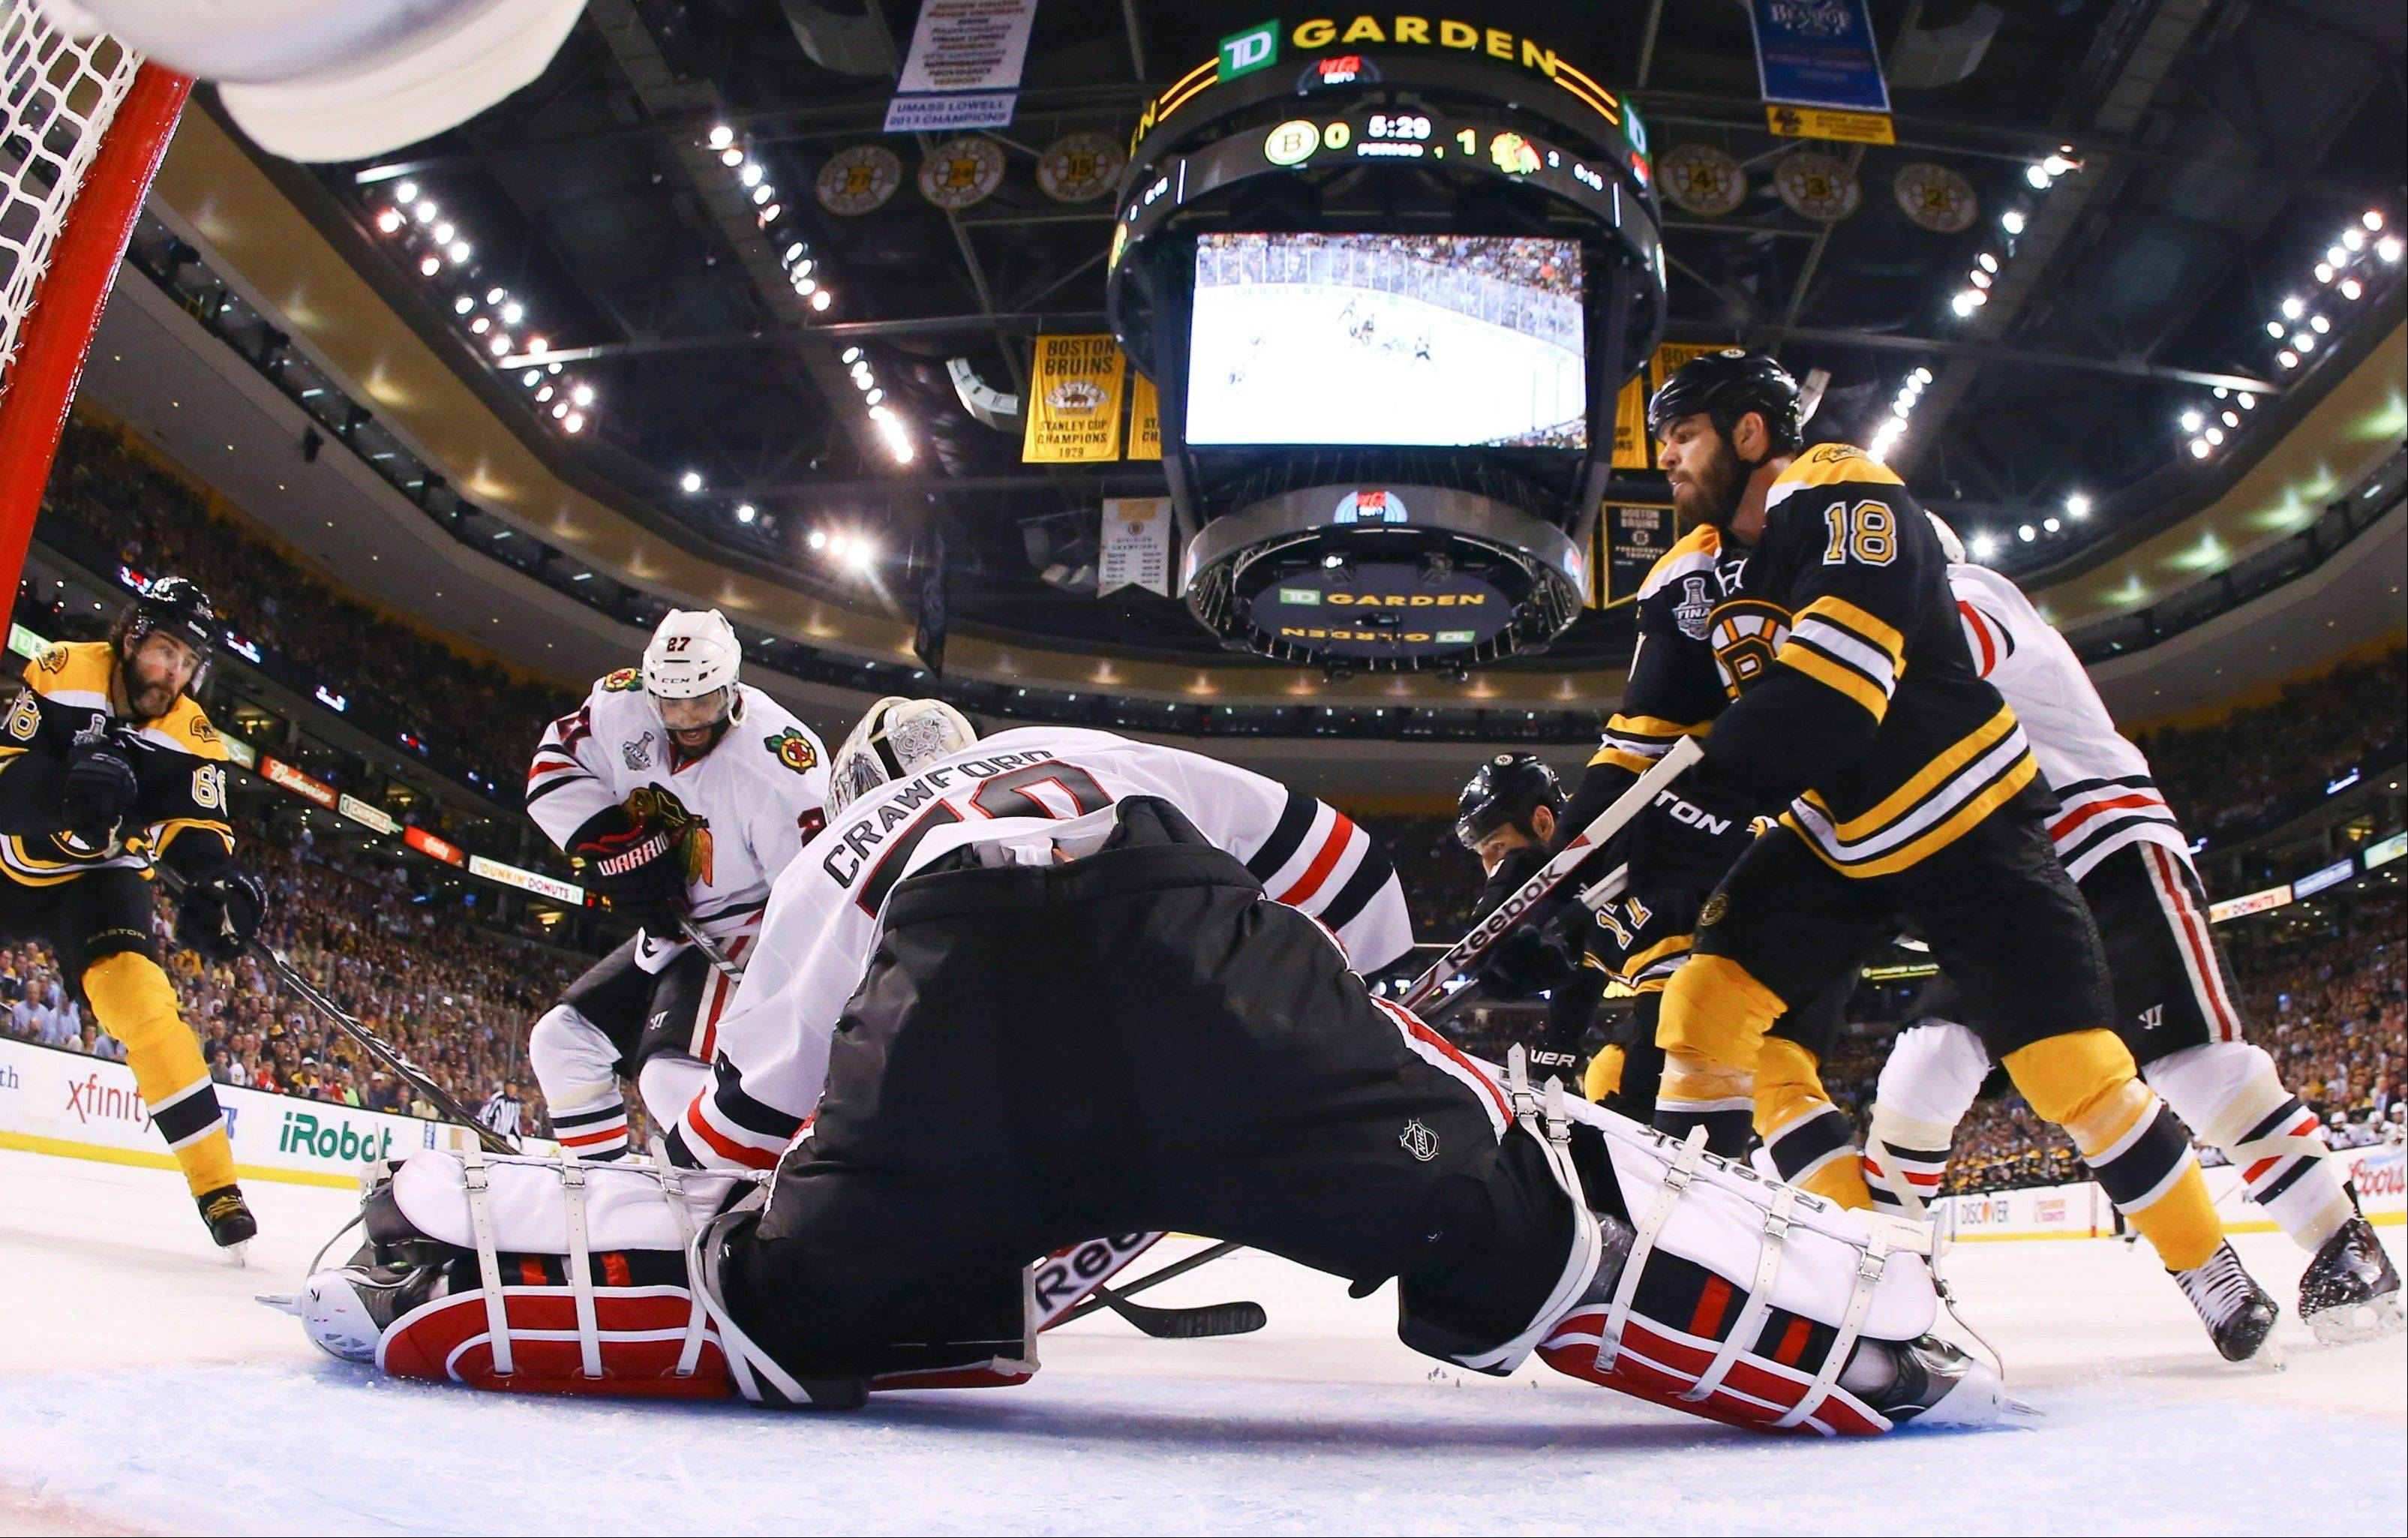 Chicago Blackhawks goalie Corey Crawford (50) defends the net against Boston Bruins right wing Jaromir Jagr (68), of the Czech Republic, and Bruins right wing Nathan Horton (18) during the first period in Game 4 of the NHL hockey Stanley Cup Finals Wednesday, June 19, 2013, in Boston. (AP Photo/Harry How, Pool)